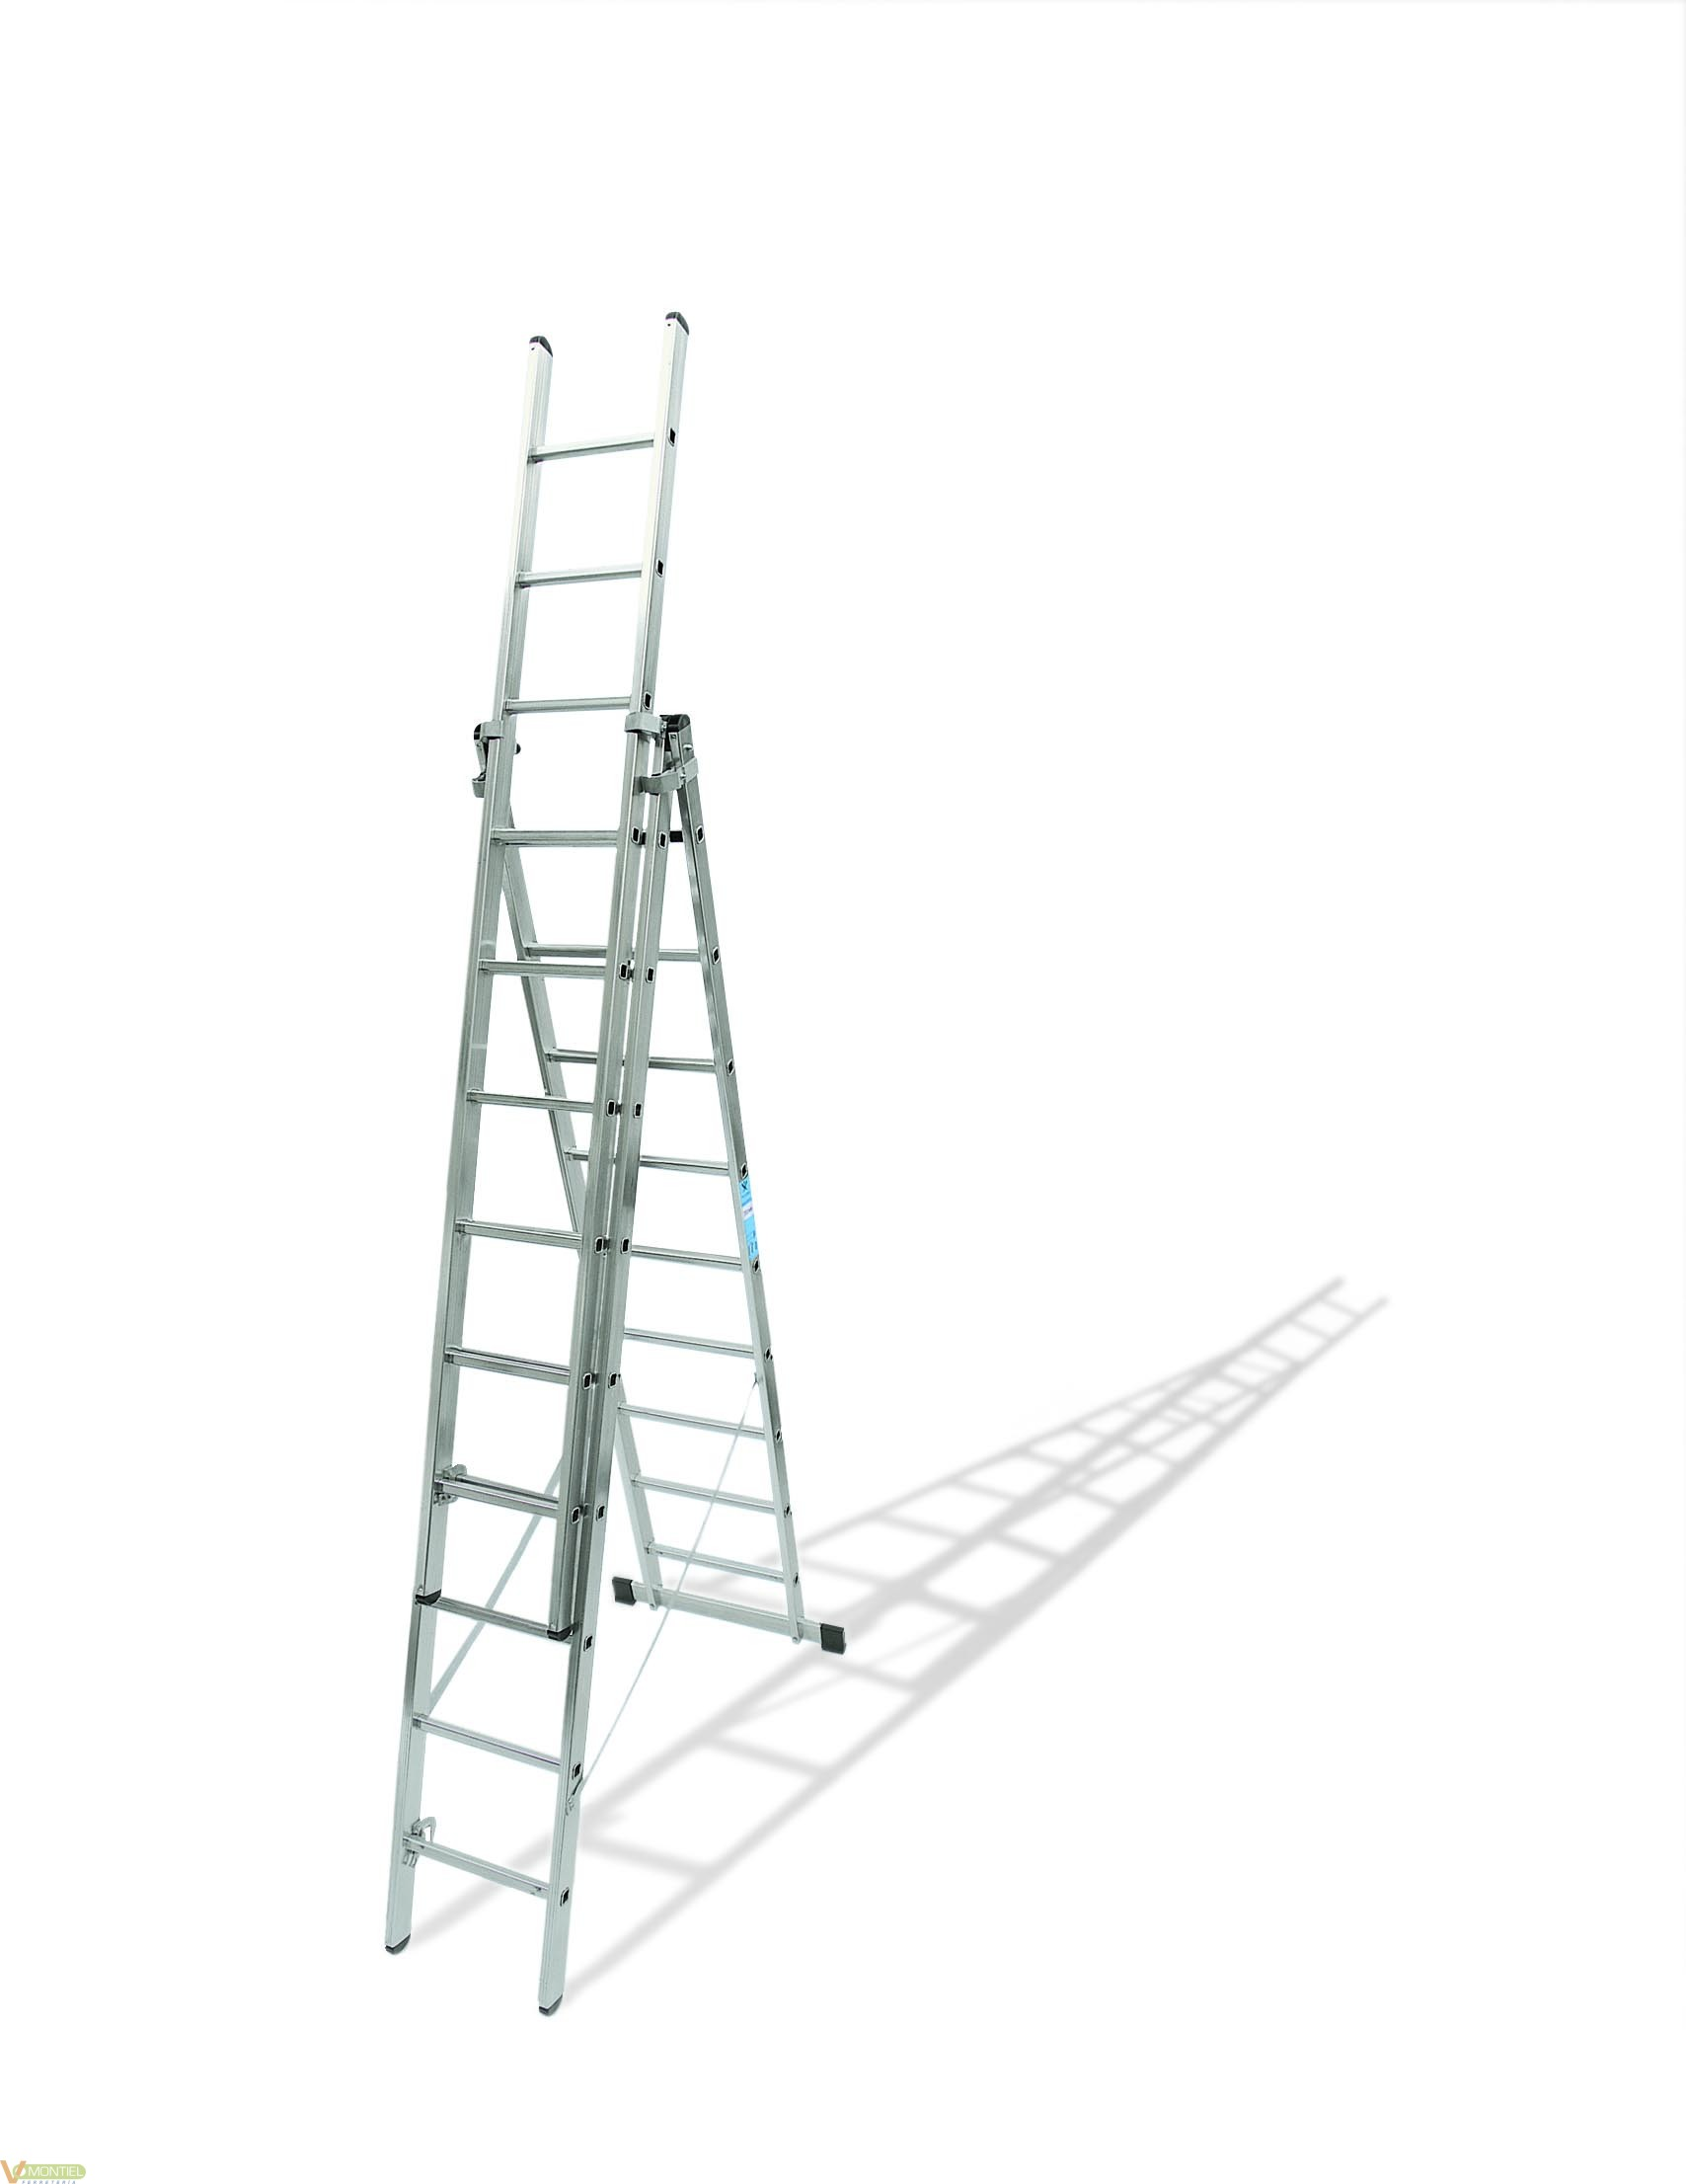 Escalera transf 1,93/4,03mt-0